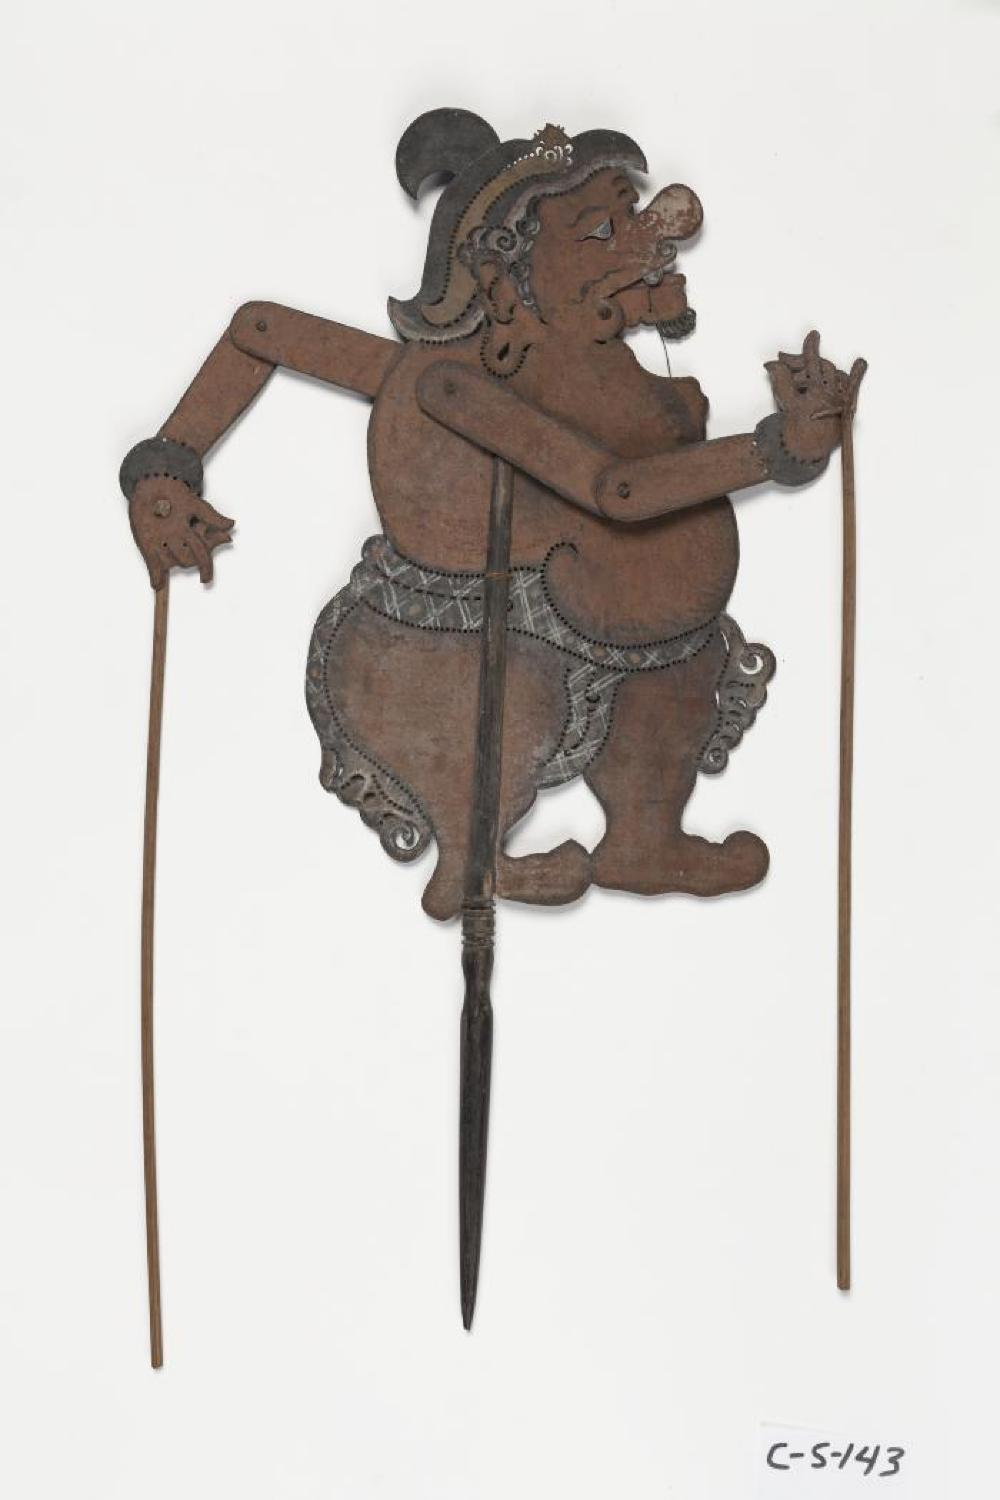 Balinese; Wayang Kulit Shadow Puppet (Merdah); 20th century; Leather, wood ; 17 1/2 x 6 7/8 x 1/8 in.; Collection of Isamu Noguchi. (Study Collection; Collectibles, C-S-143)